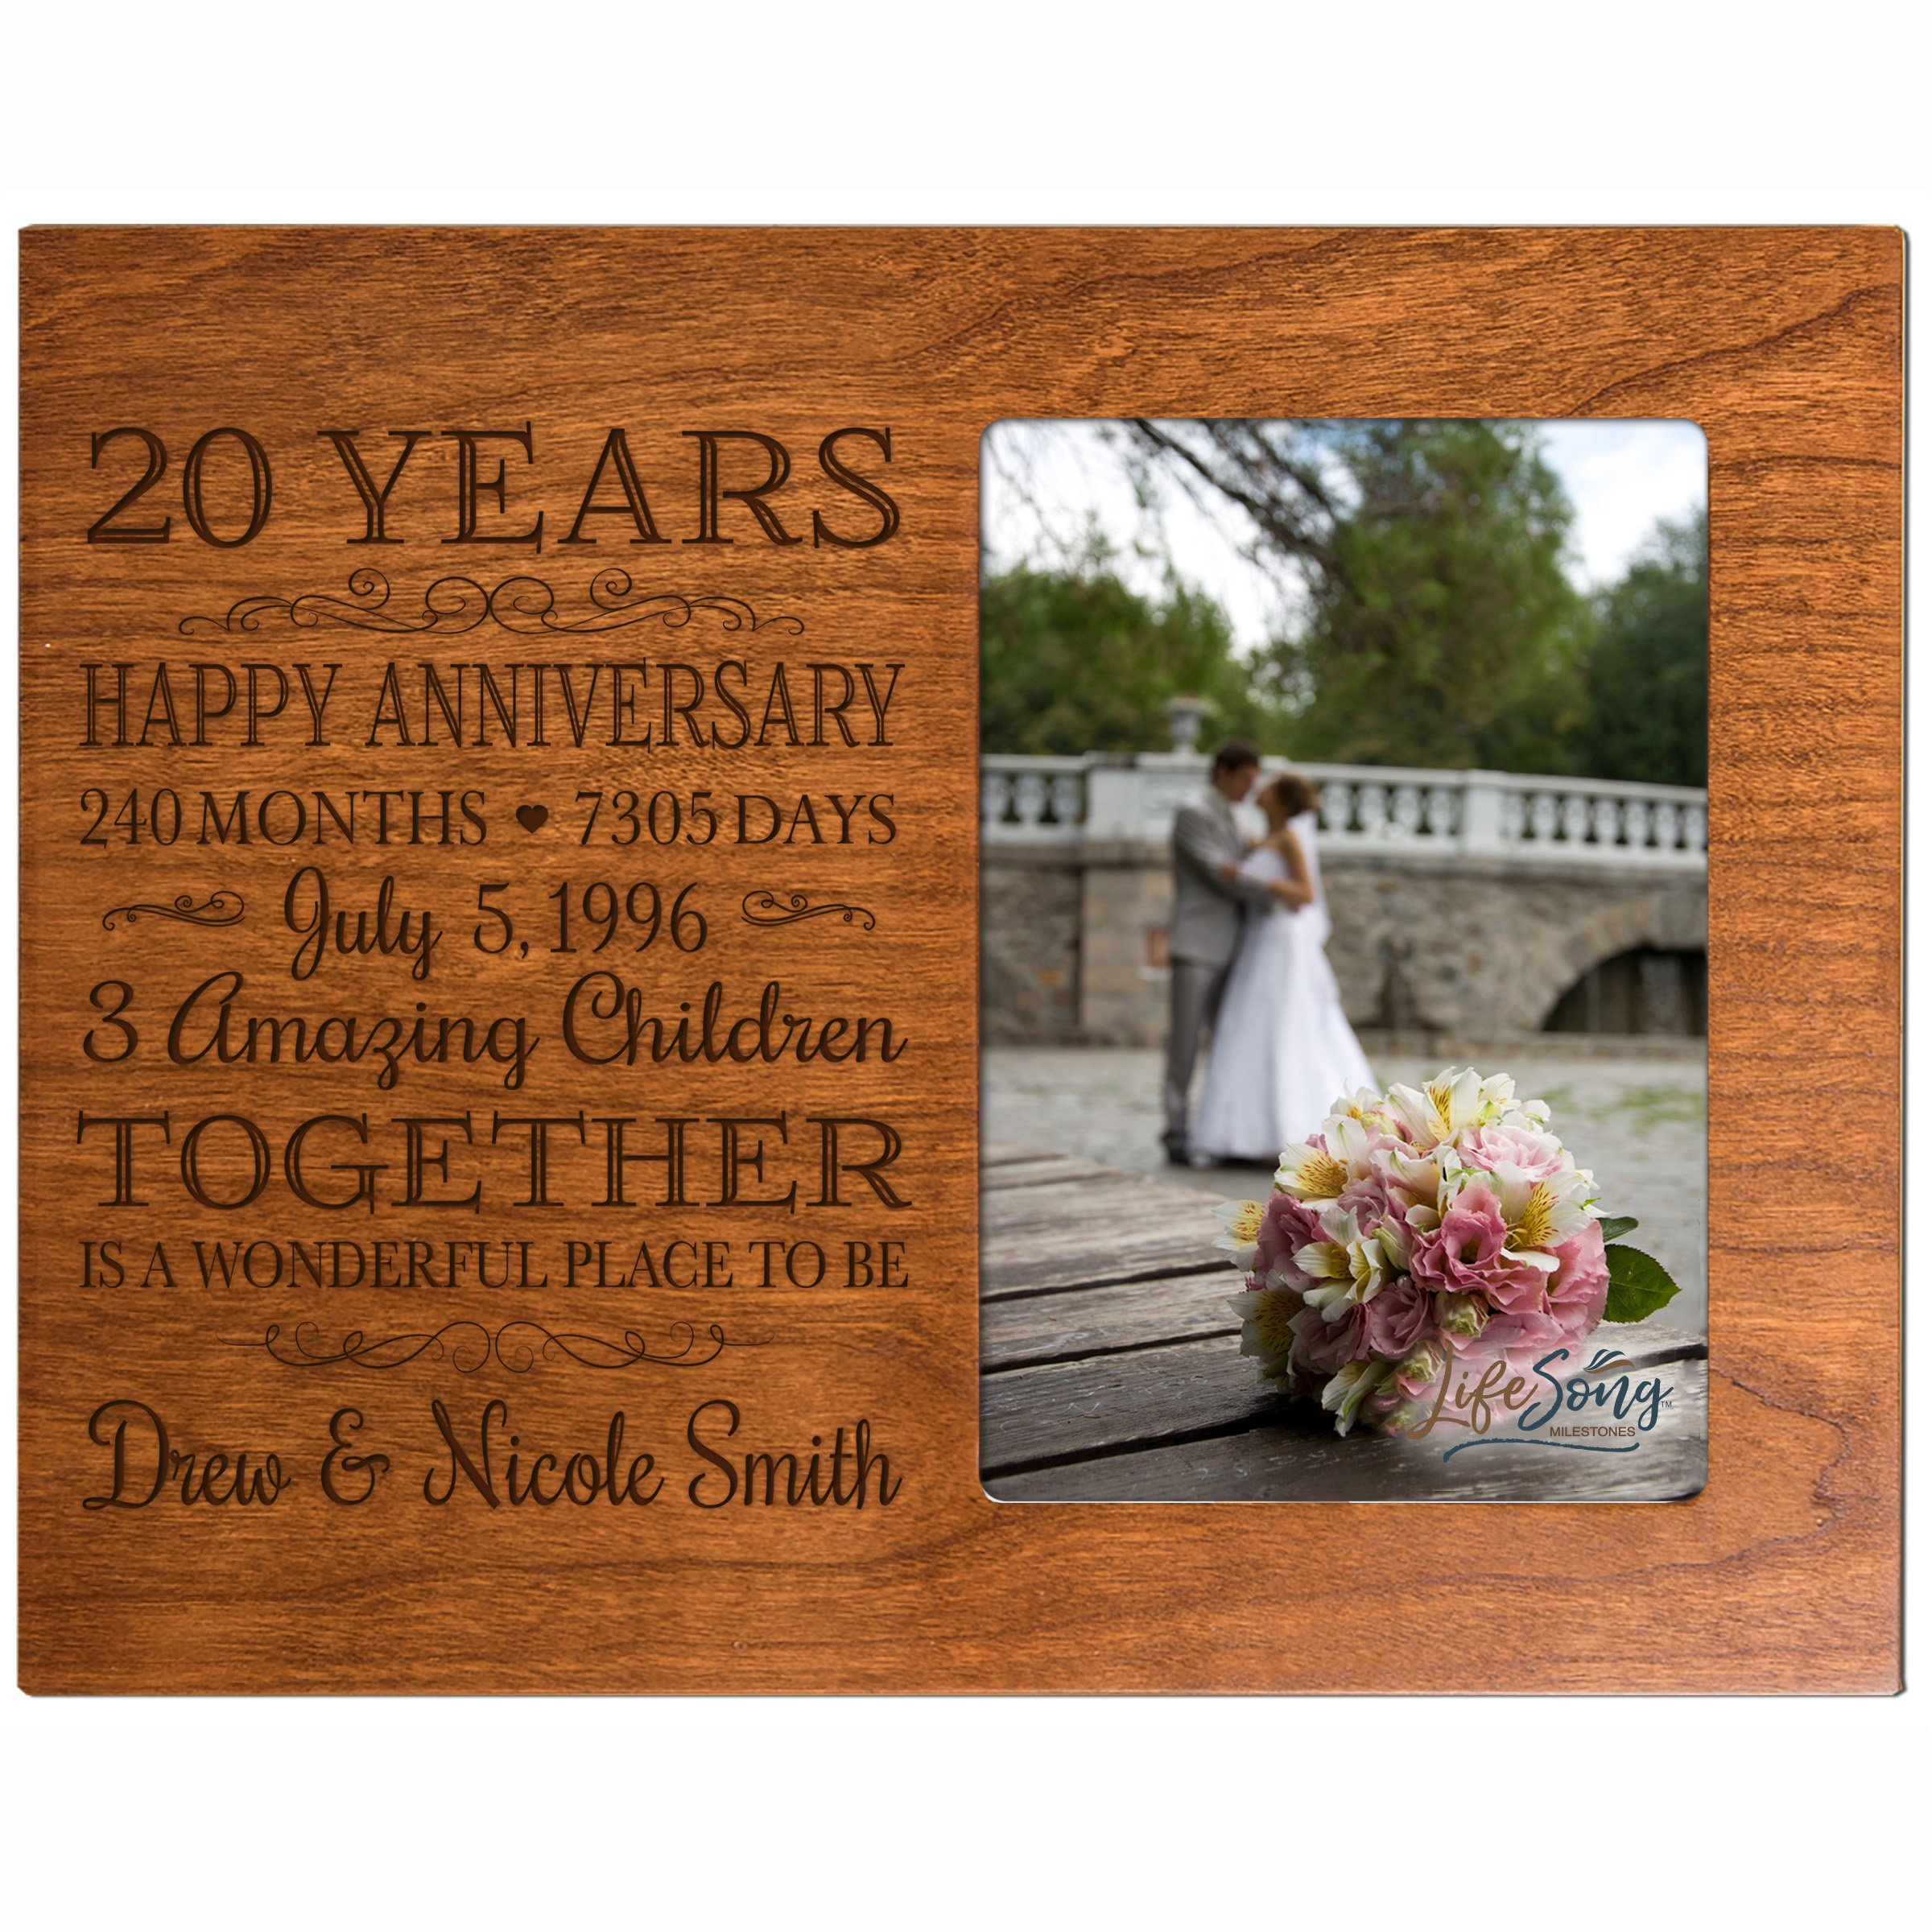 Personalized Twenty year anniversary gift for her him couple Custom Engraved wedding gift for husband wife girlfriend boyfriend photo frame holds 4x6 photo by LifeSong Milestones (cherry)